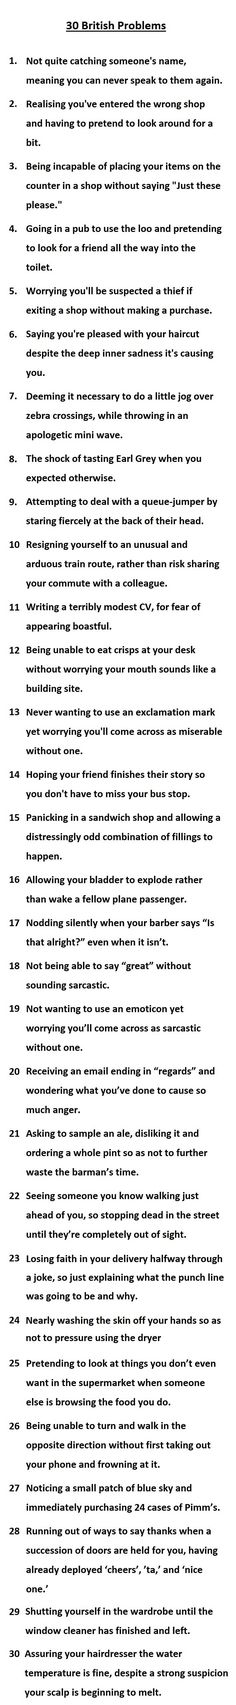 30 British Problems - aha! thats where I get my little foibles from 400 years of British rule!